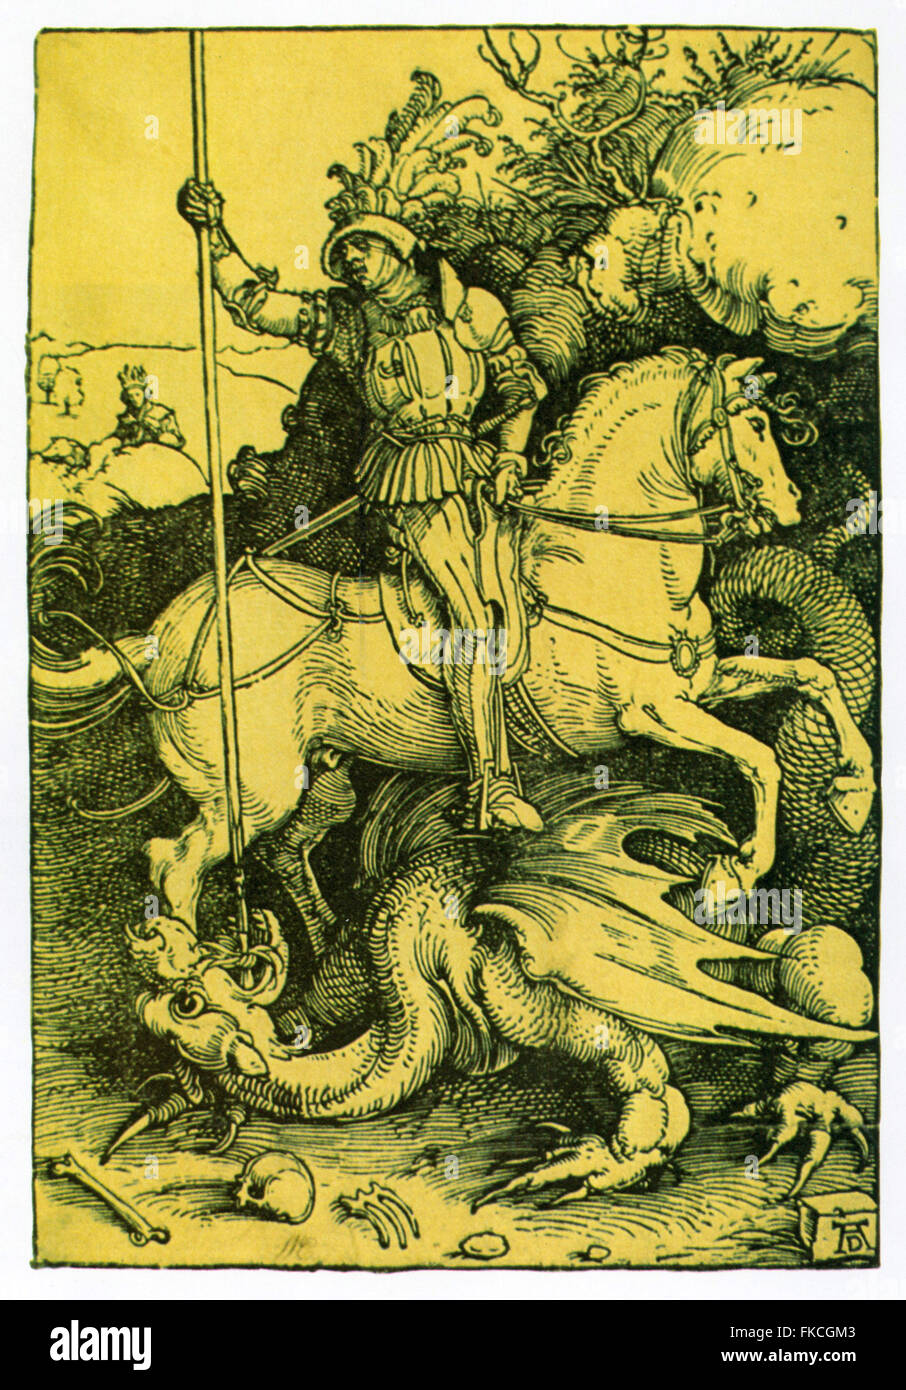 UK Knights Book Plate - Stock Image